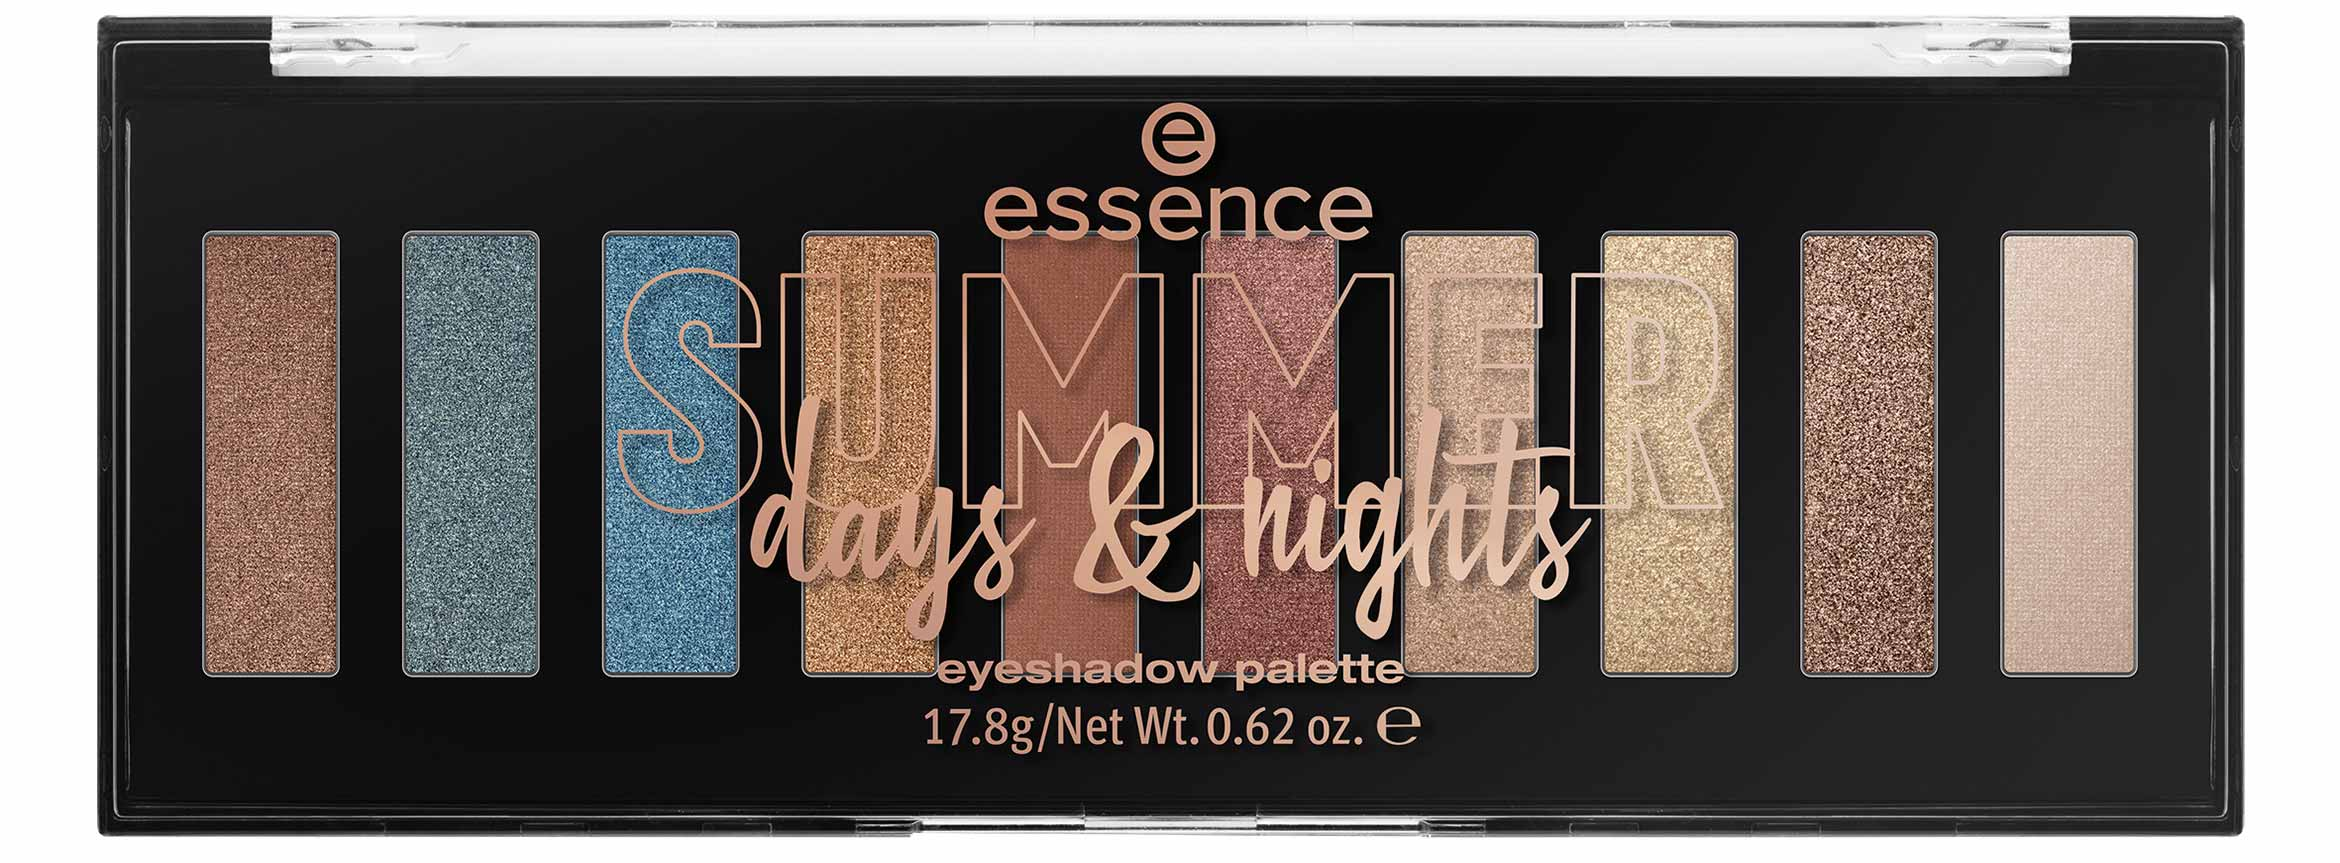 essence-summer-days-and-nights-eyeshadow-palette